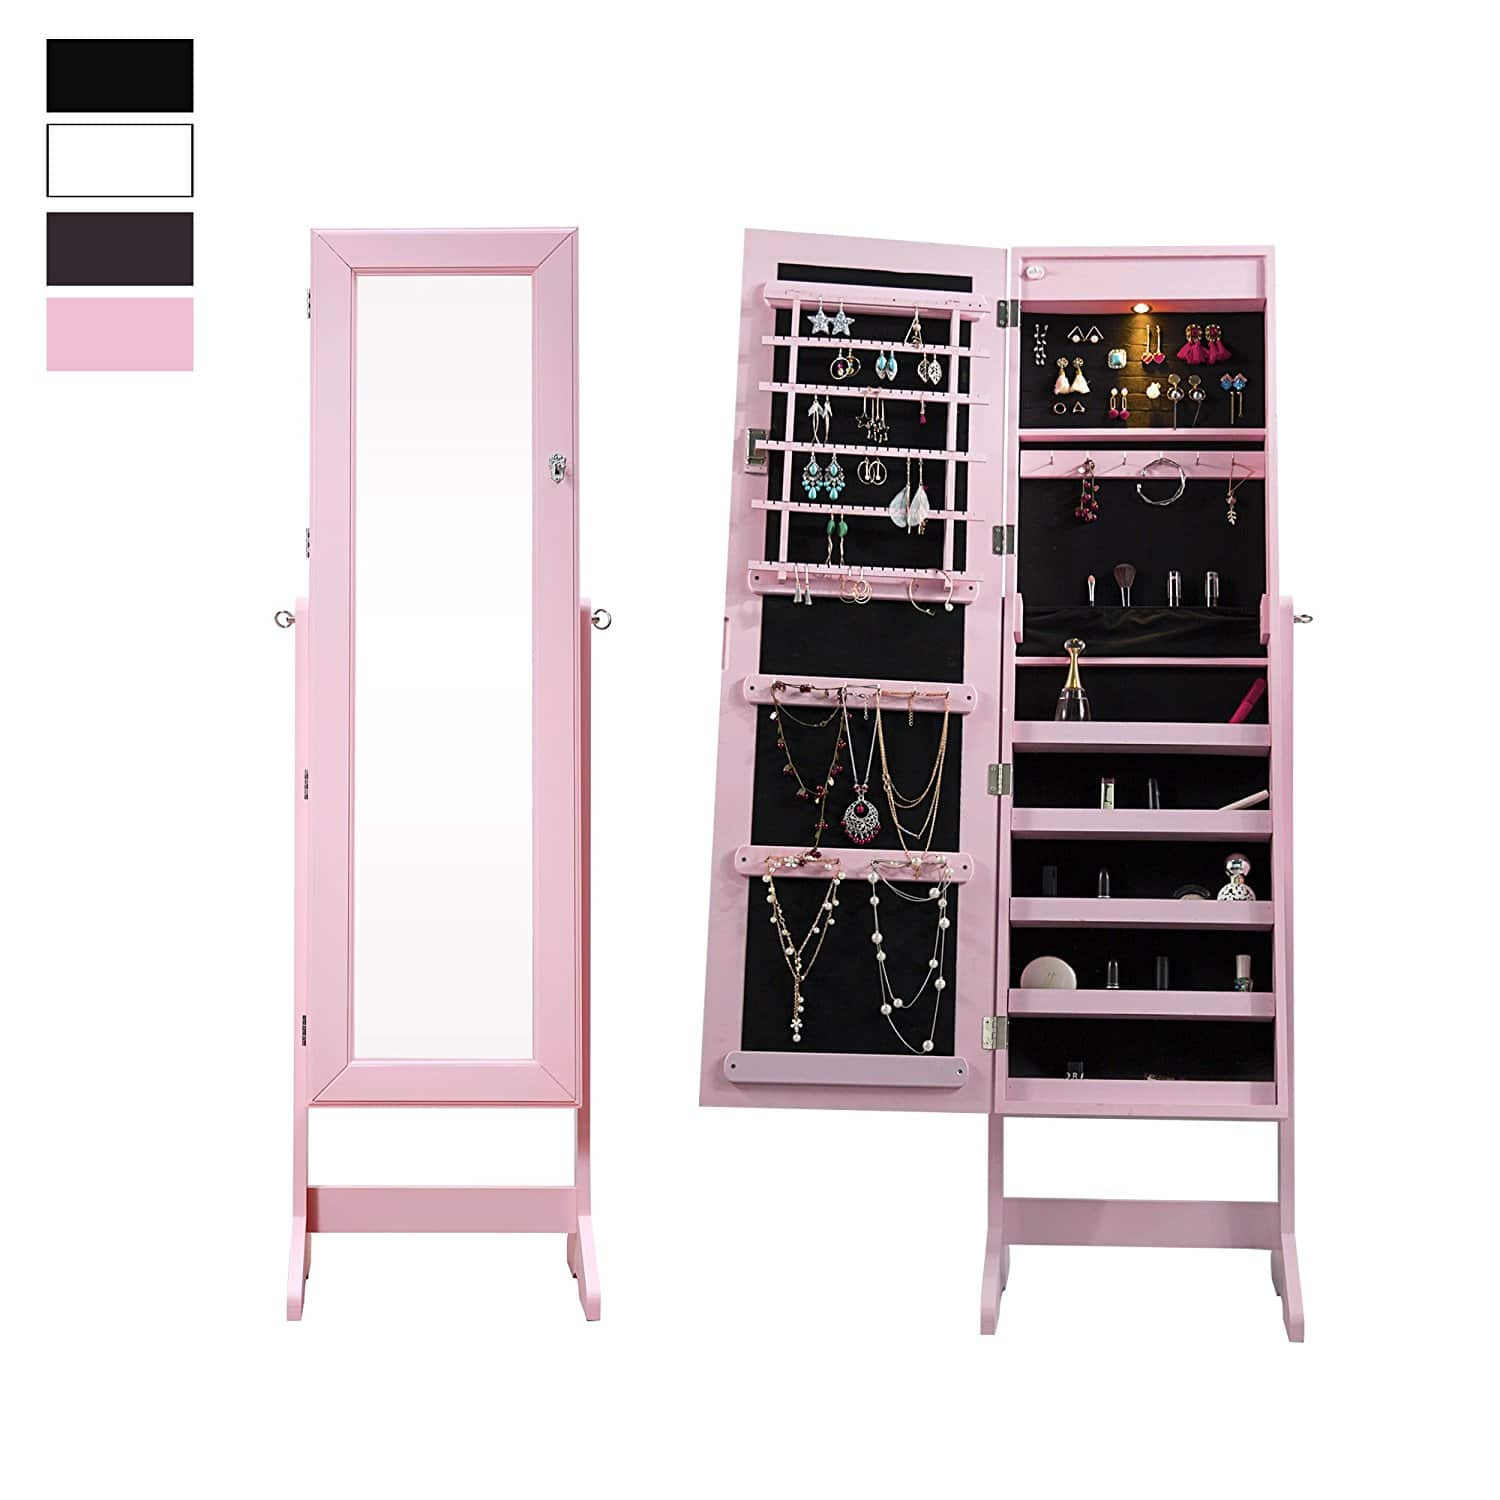 Cloud Mountain Mirrored Jewelry Armoire Organizer with LED Light @Amazon 32% OFF $64.99+ Free Shipping